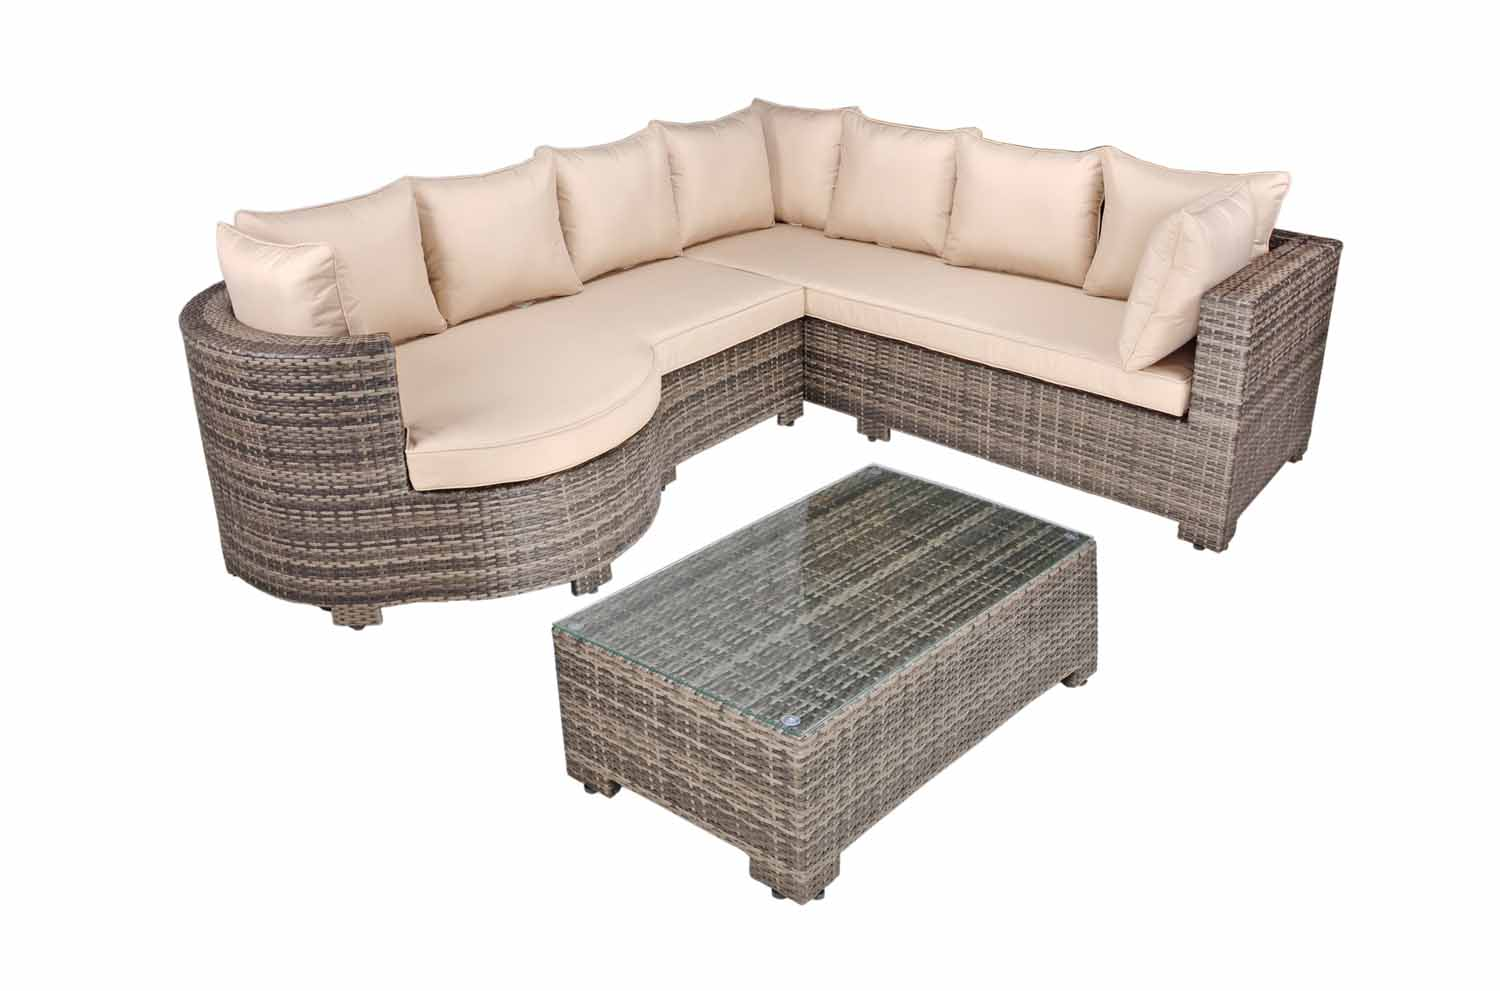 Kensington Rounded Arm Rattan Corner Sofa Set With Coffee Table 2017 Range